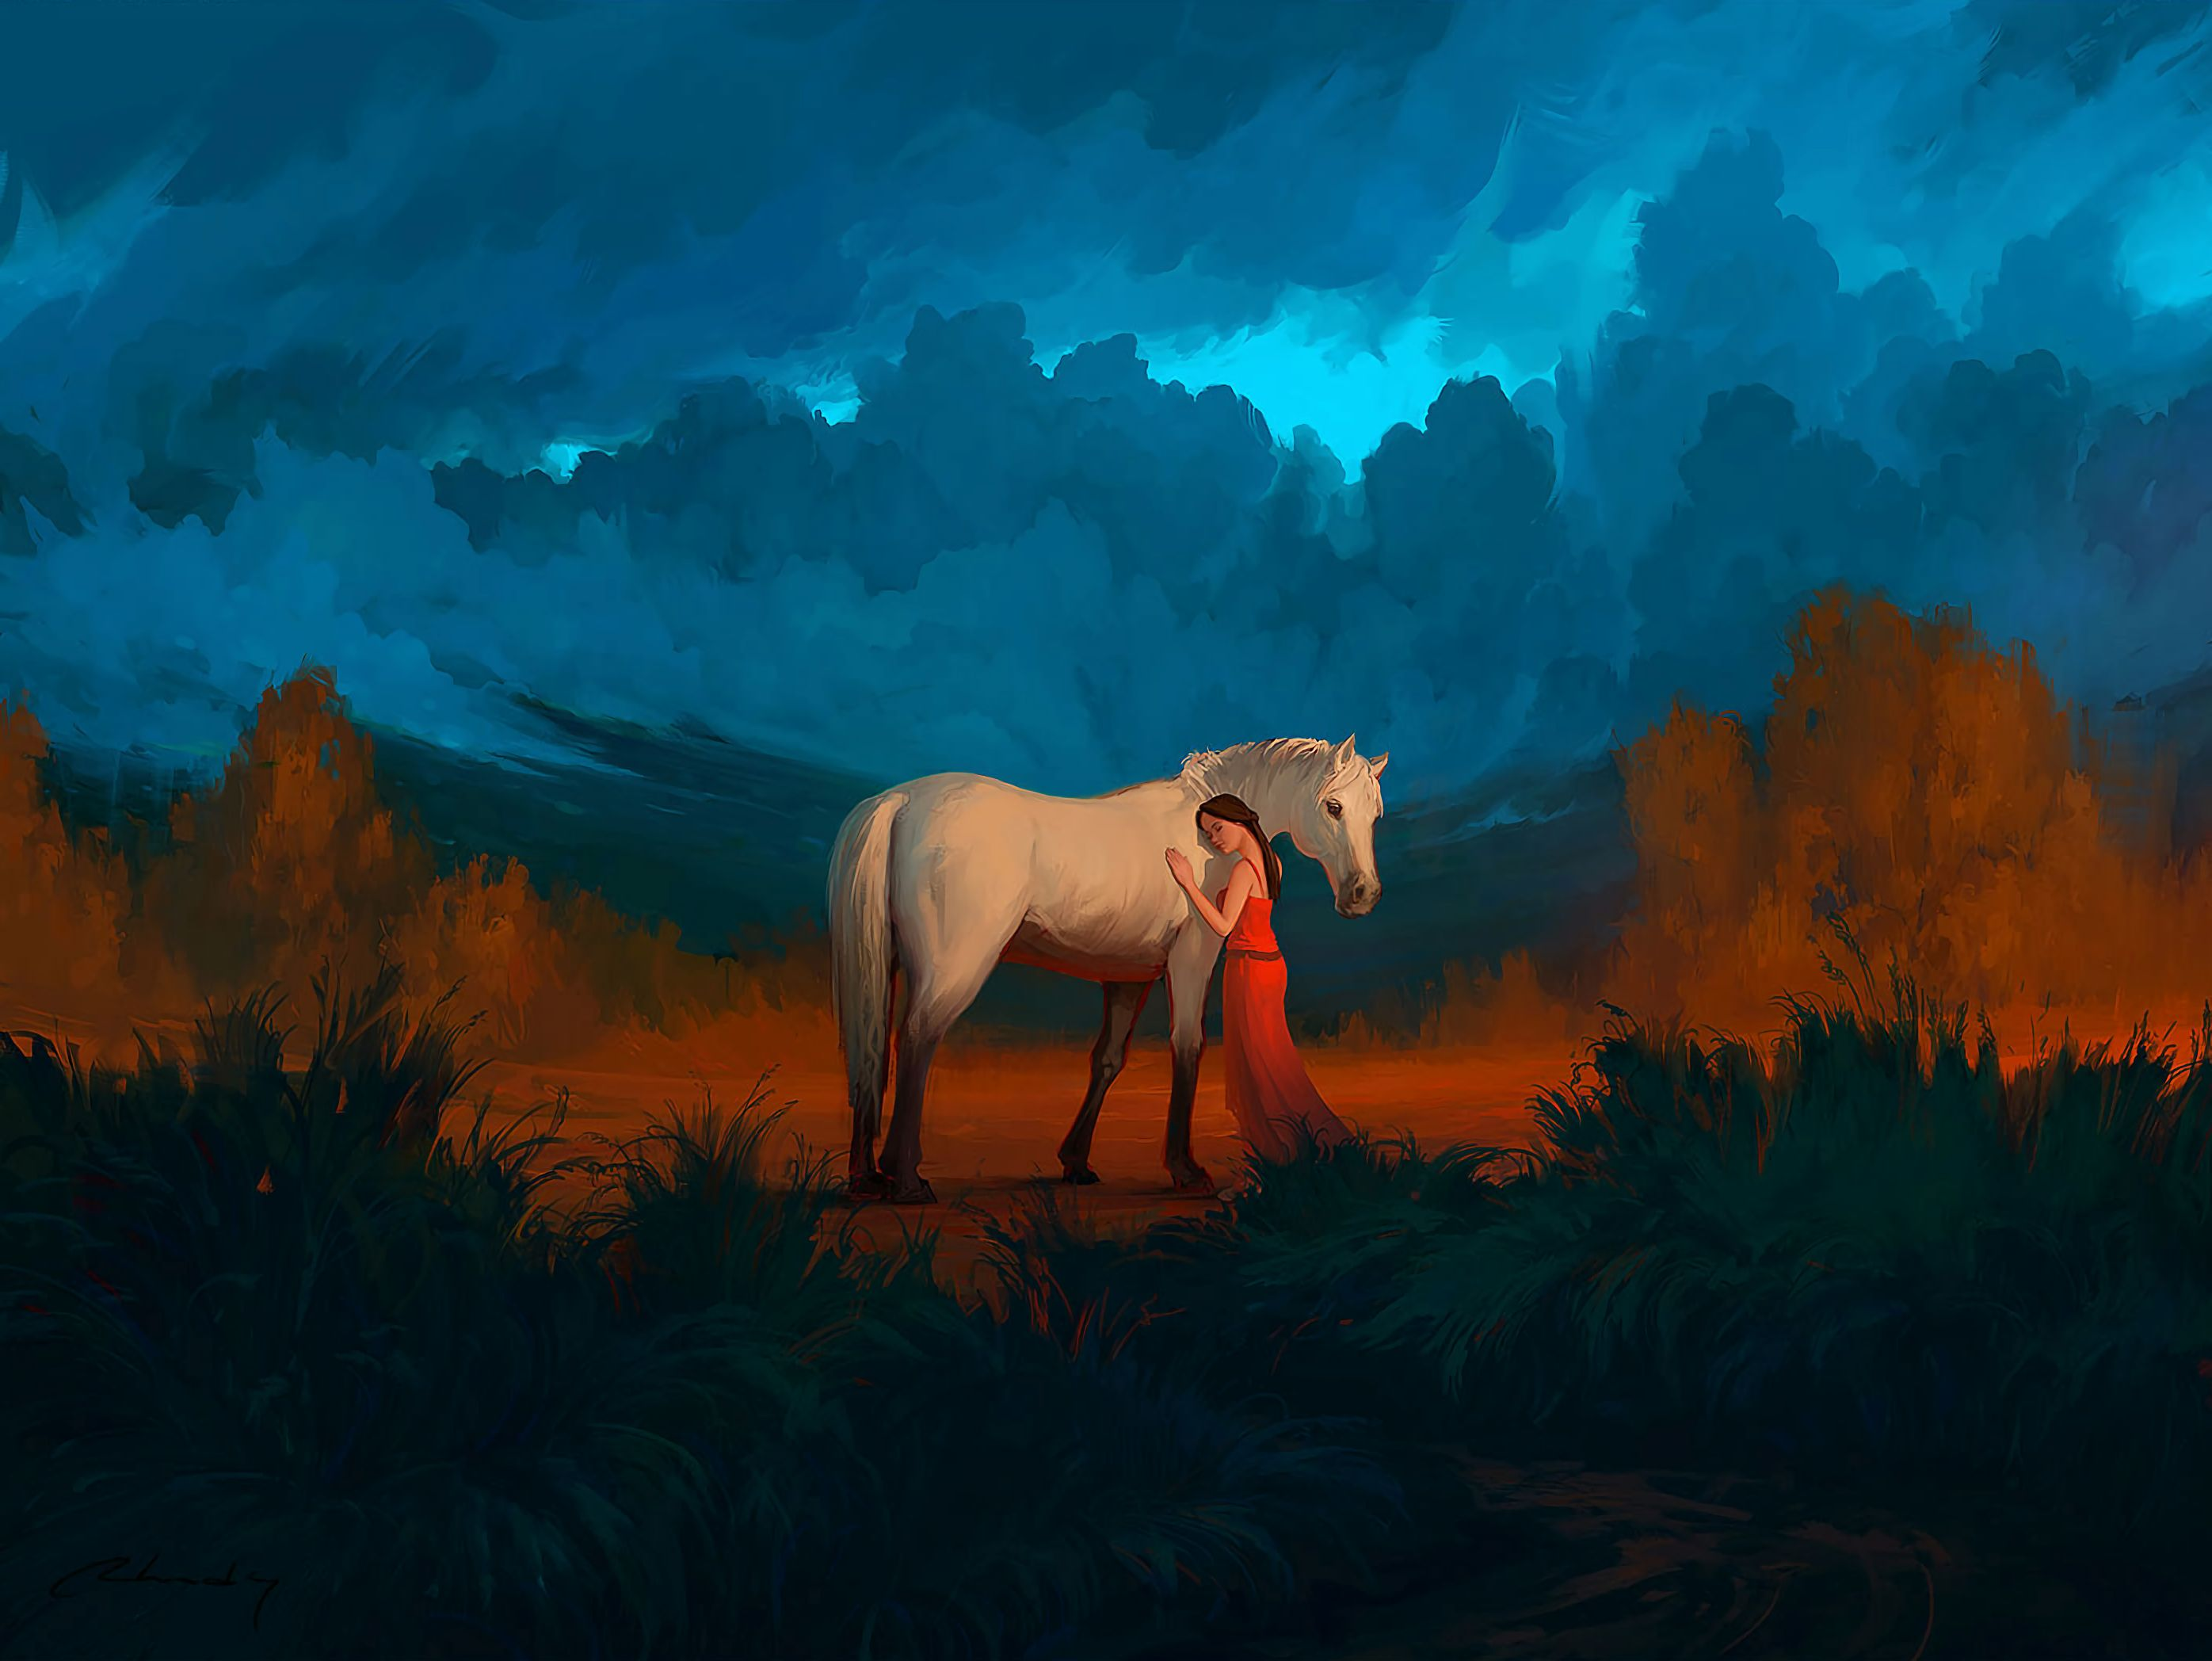 147487 download wallpaper Art, Girl, Care, Horse, Friends screensavers and pictures for free